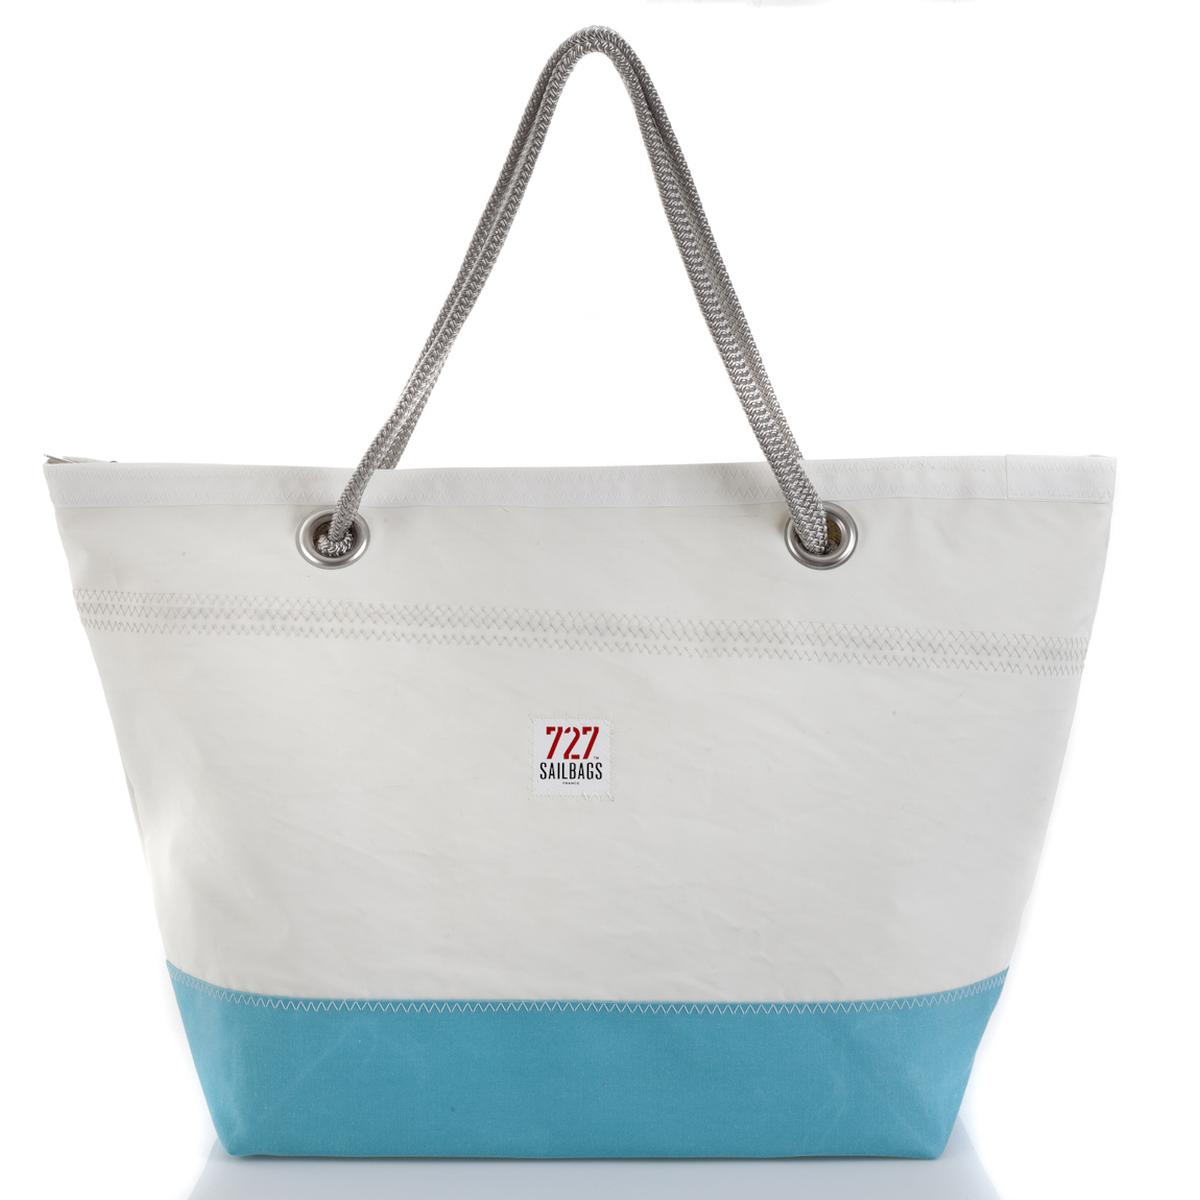 CARLA Tasche Light Blue No 3 grey Rückseite